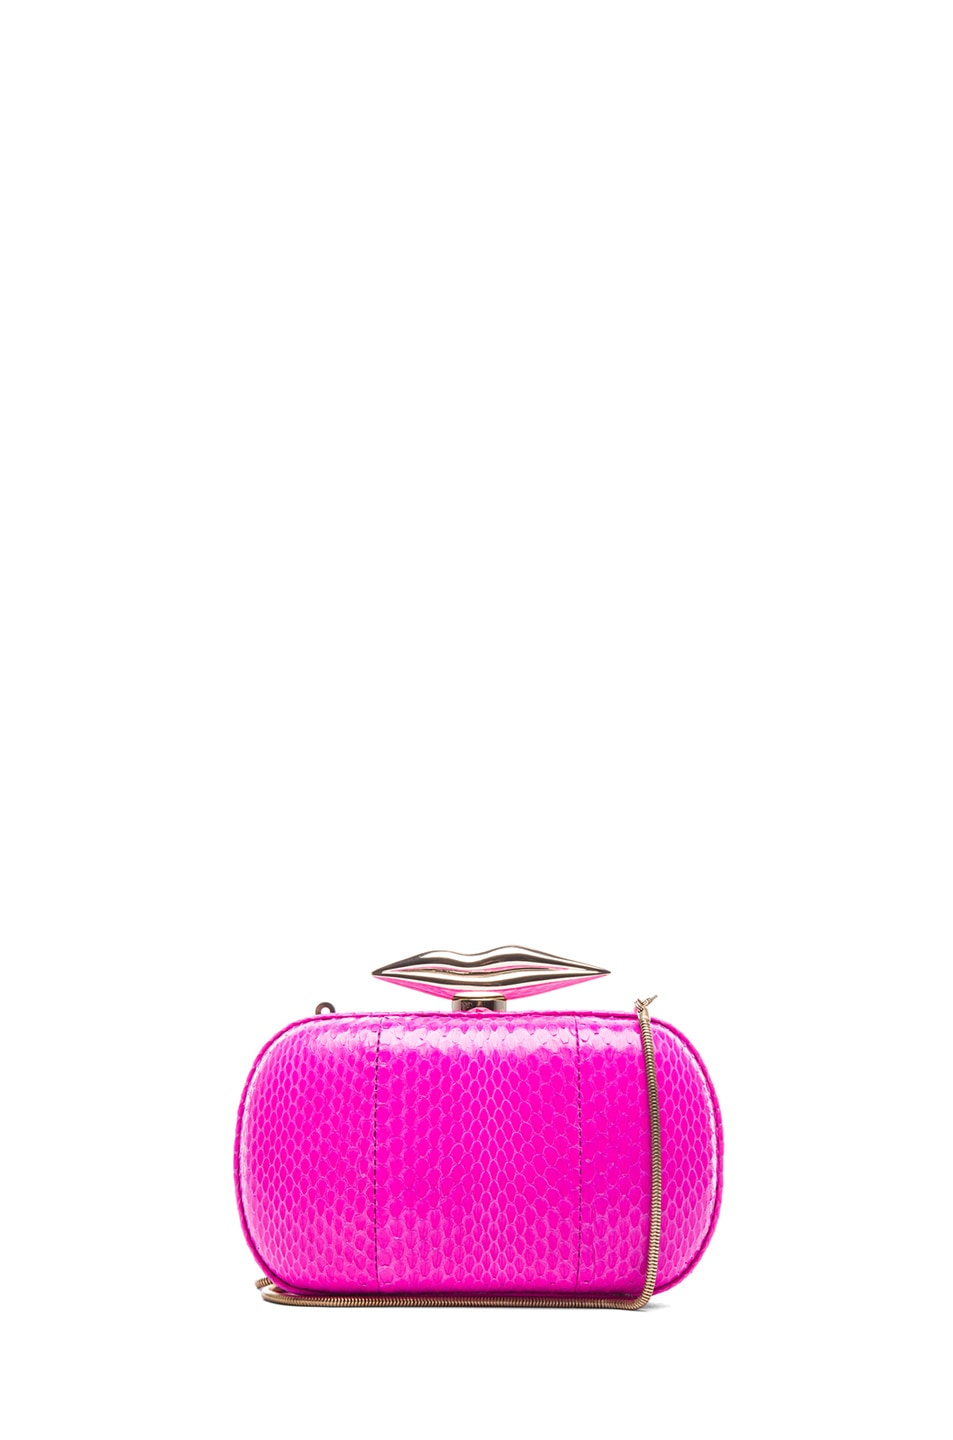 Image 1 of Diane von Furstenberg Minaudiere Flirty Snake Clutch in Fetish Pink